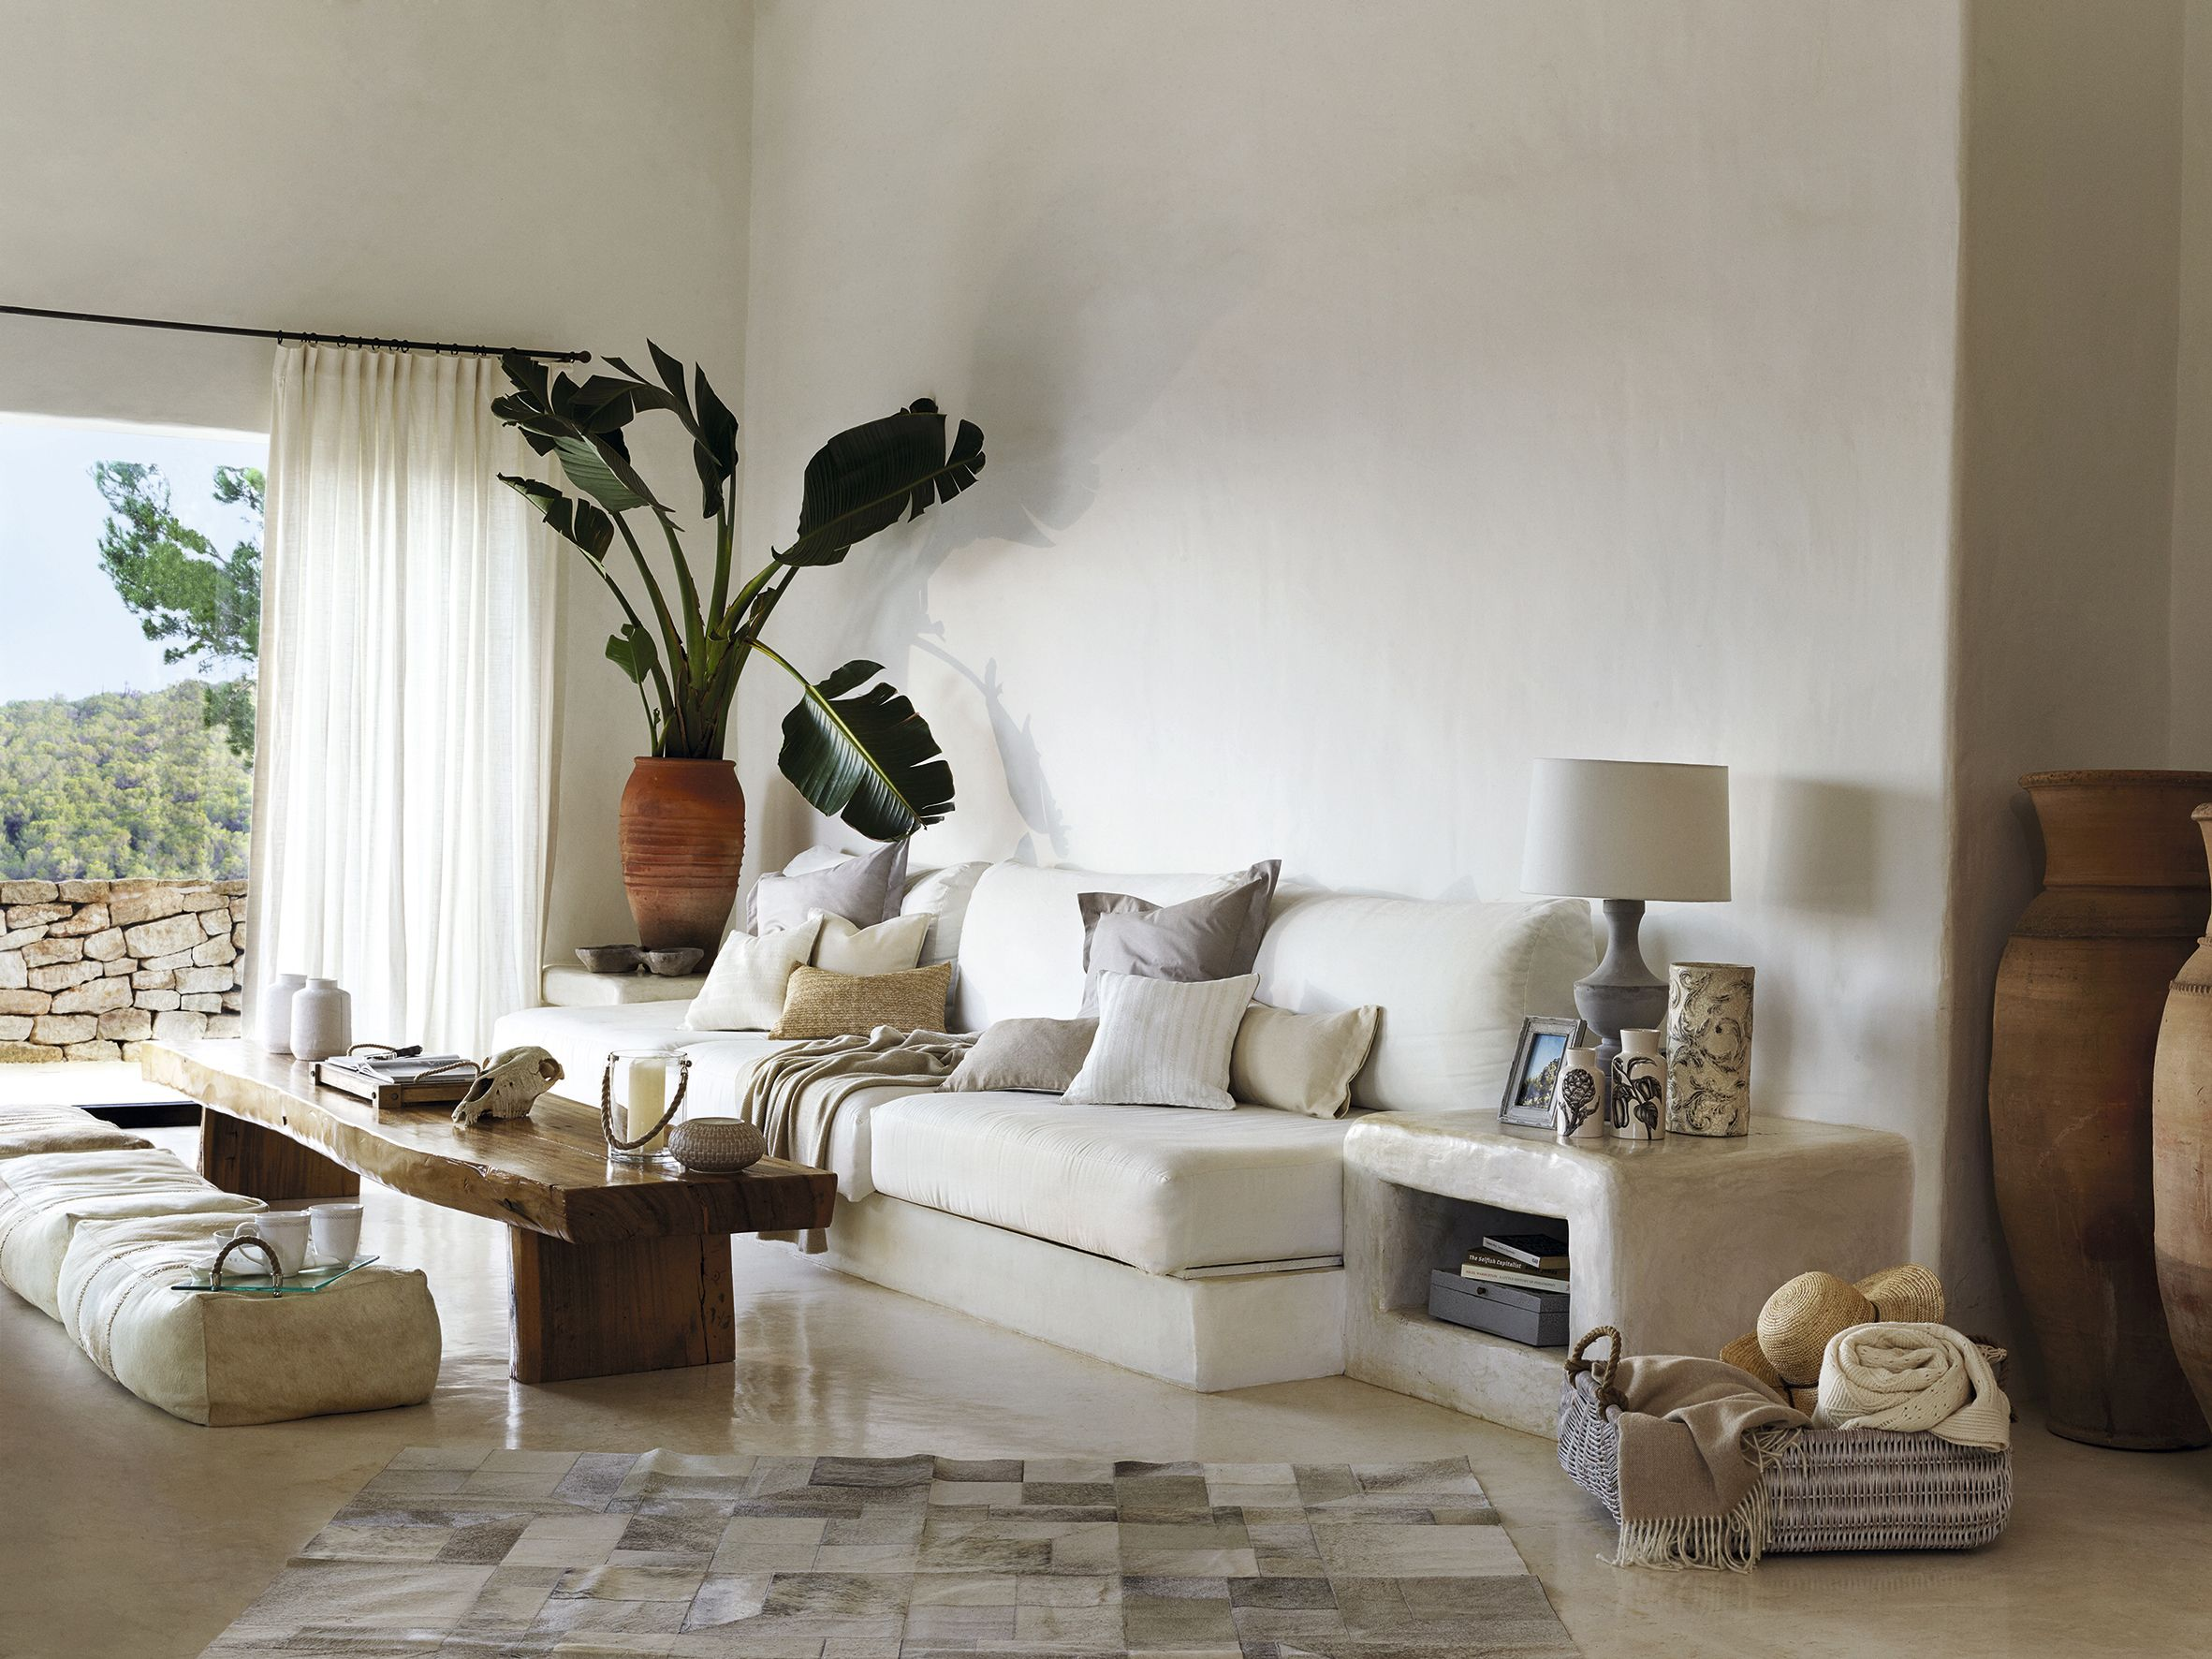 New Zara Home Spring - Summer 2015 Collection | Living rooms ...